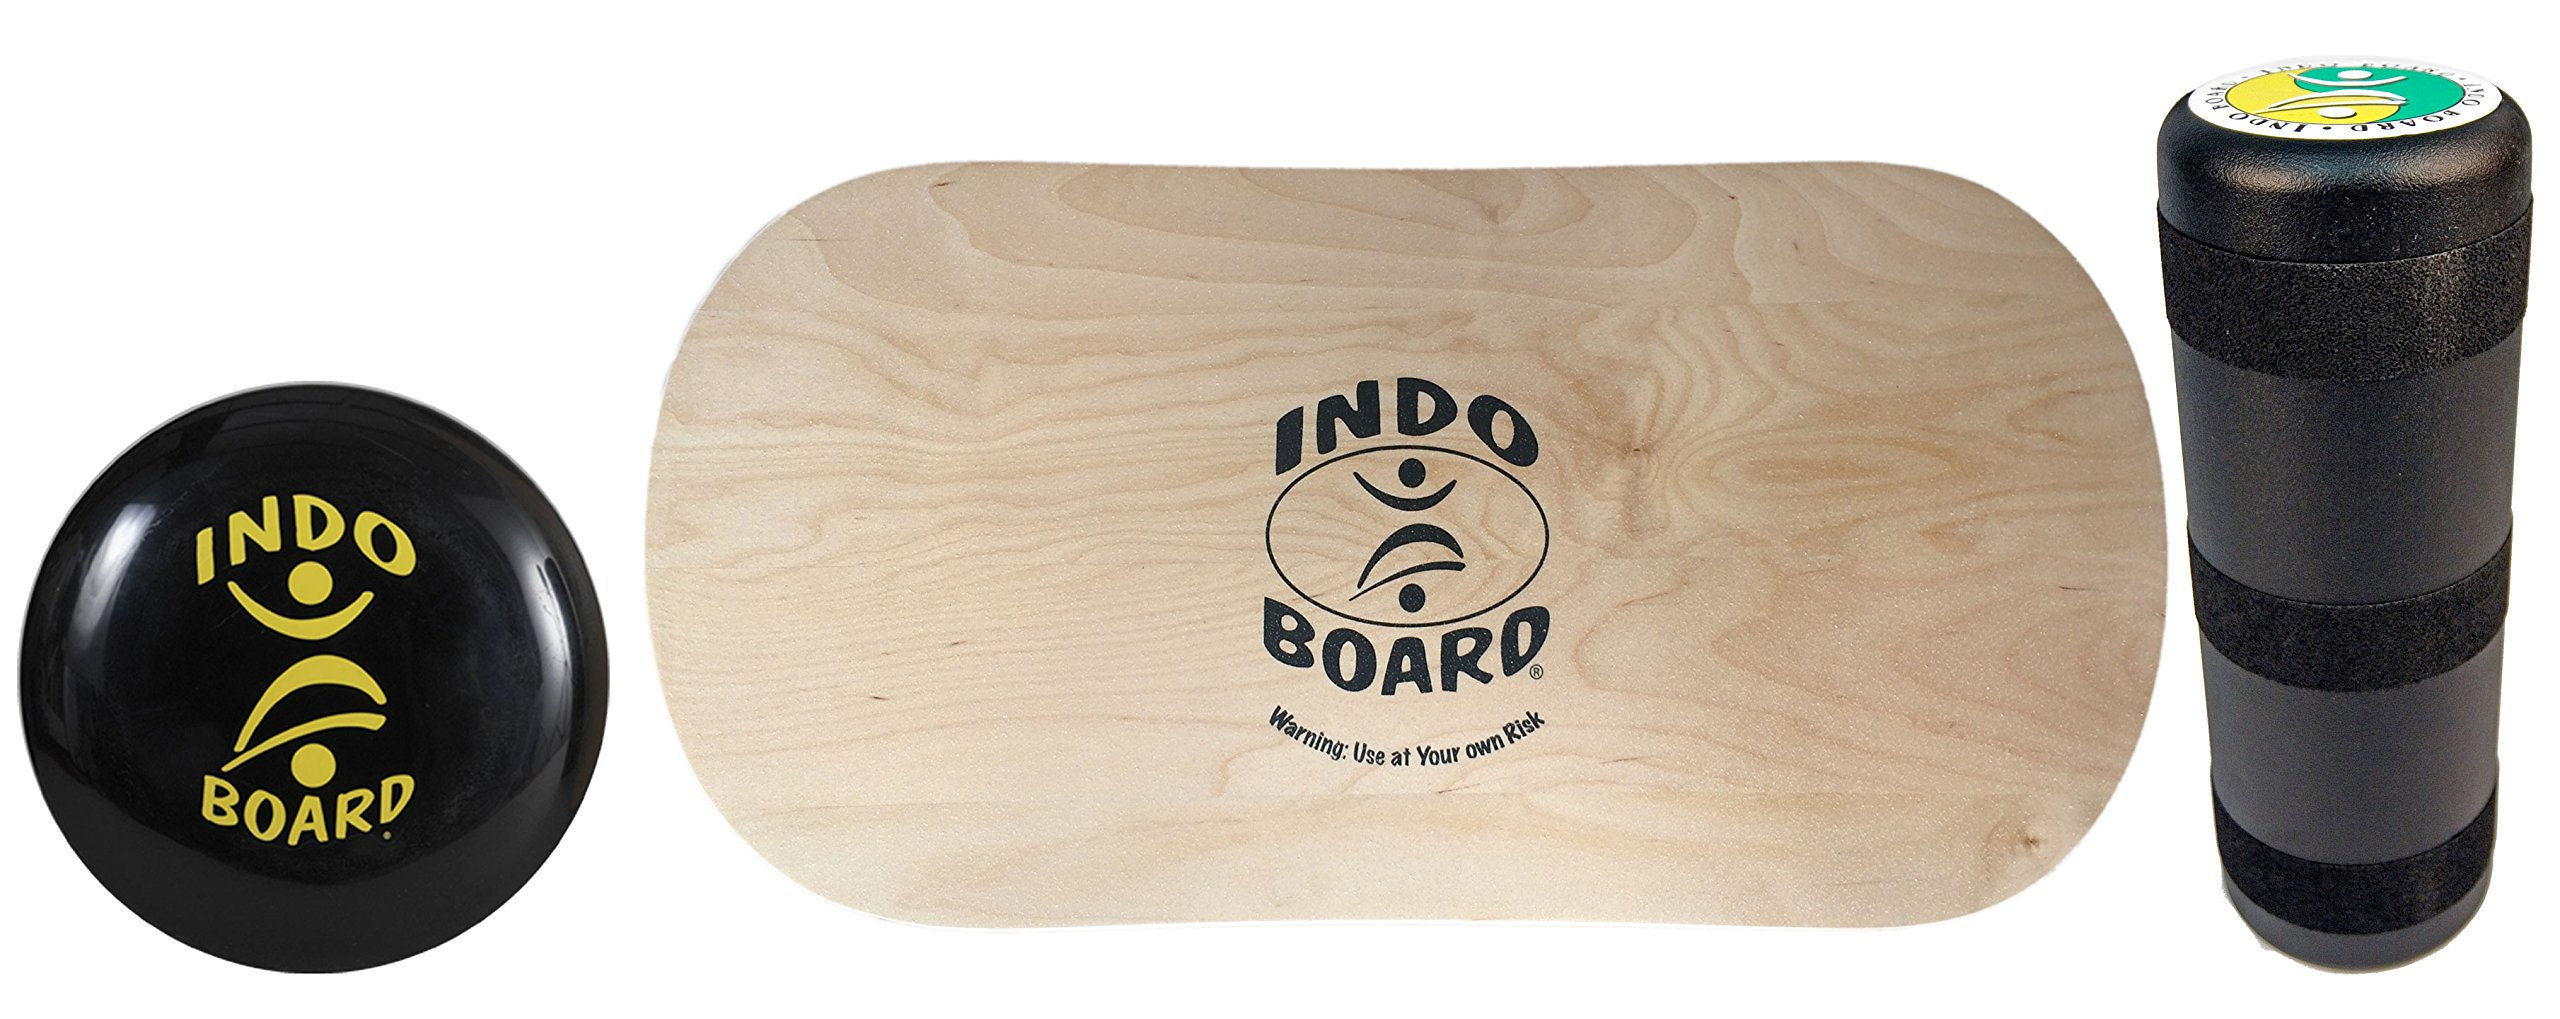 INDO BOARD Rocker Balance Board Package Ages, Improve Balance, Comes with 33'' X 15'' Non-Slip Deck 6.5'' Roller and 14'' Cushion - Natural Wood by INDO BOARD (Image #7)